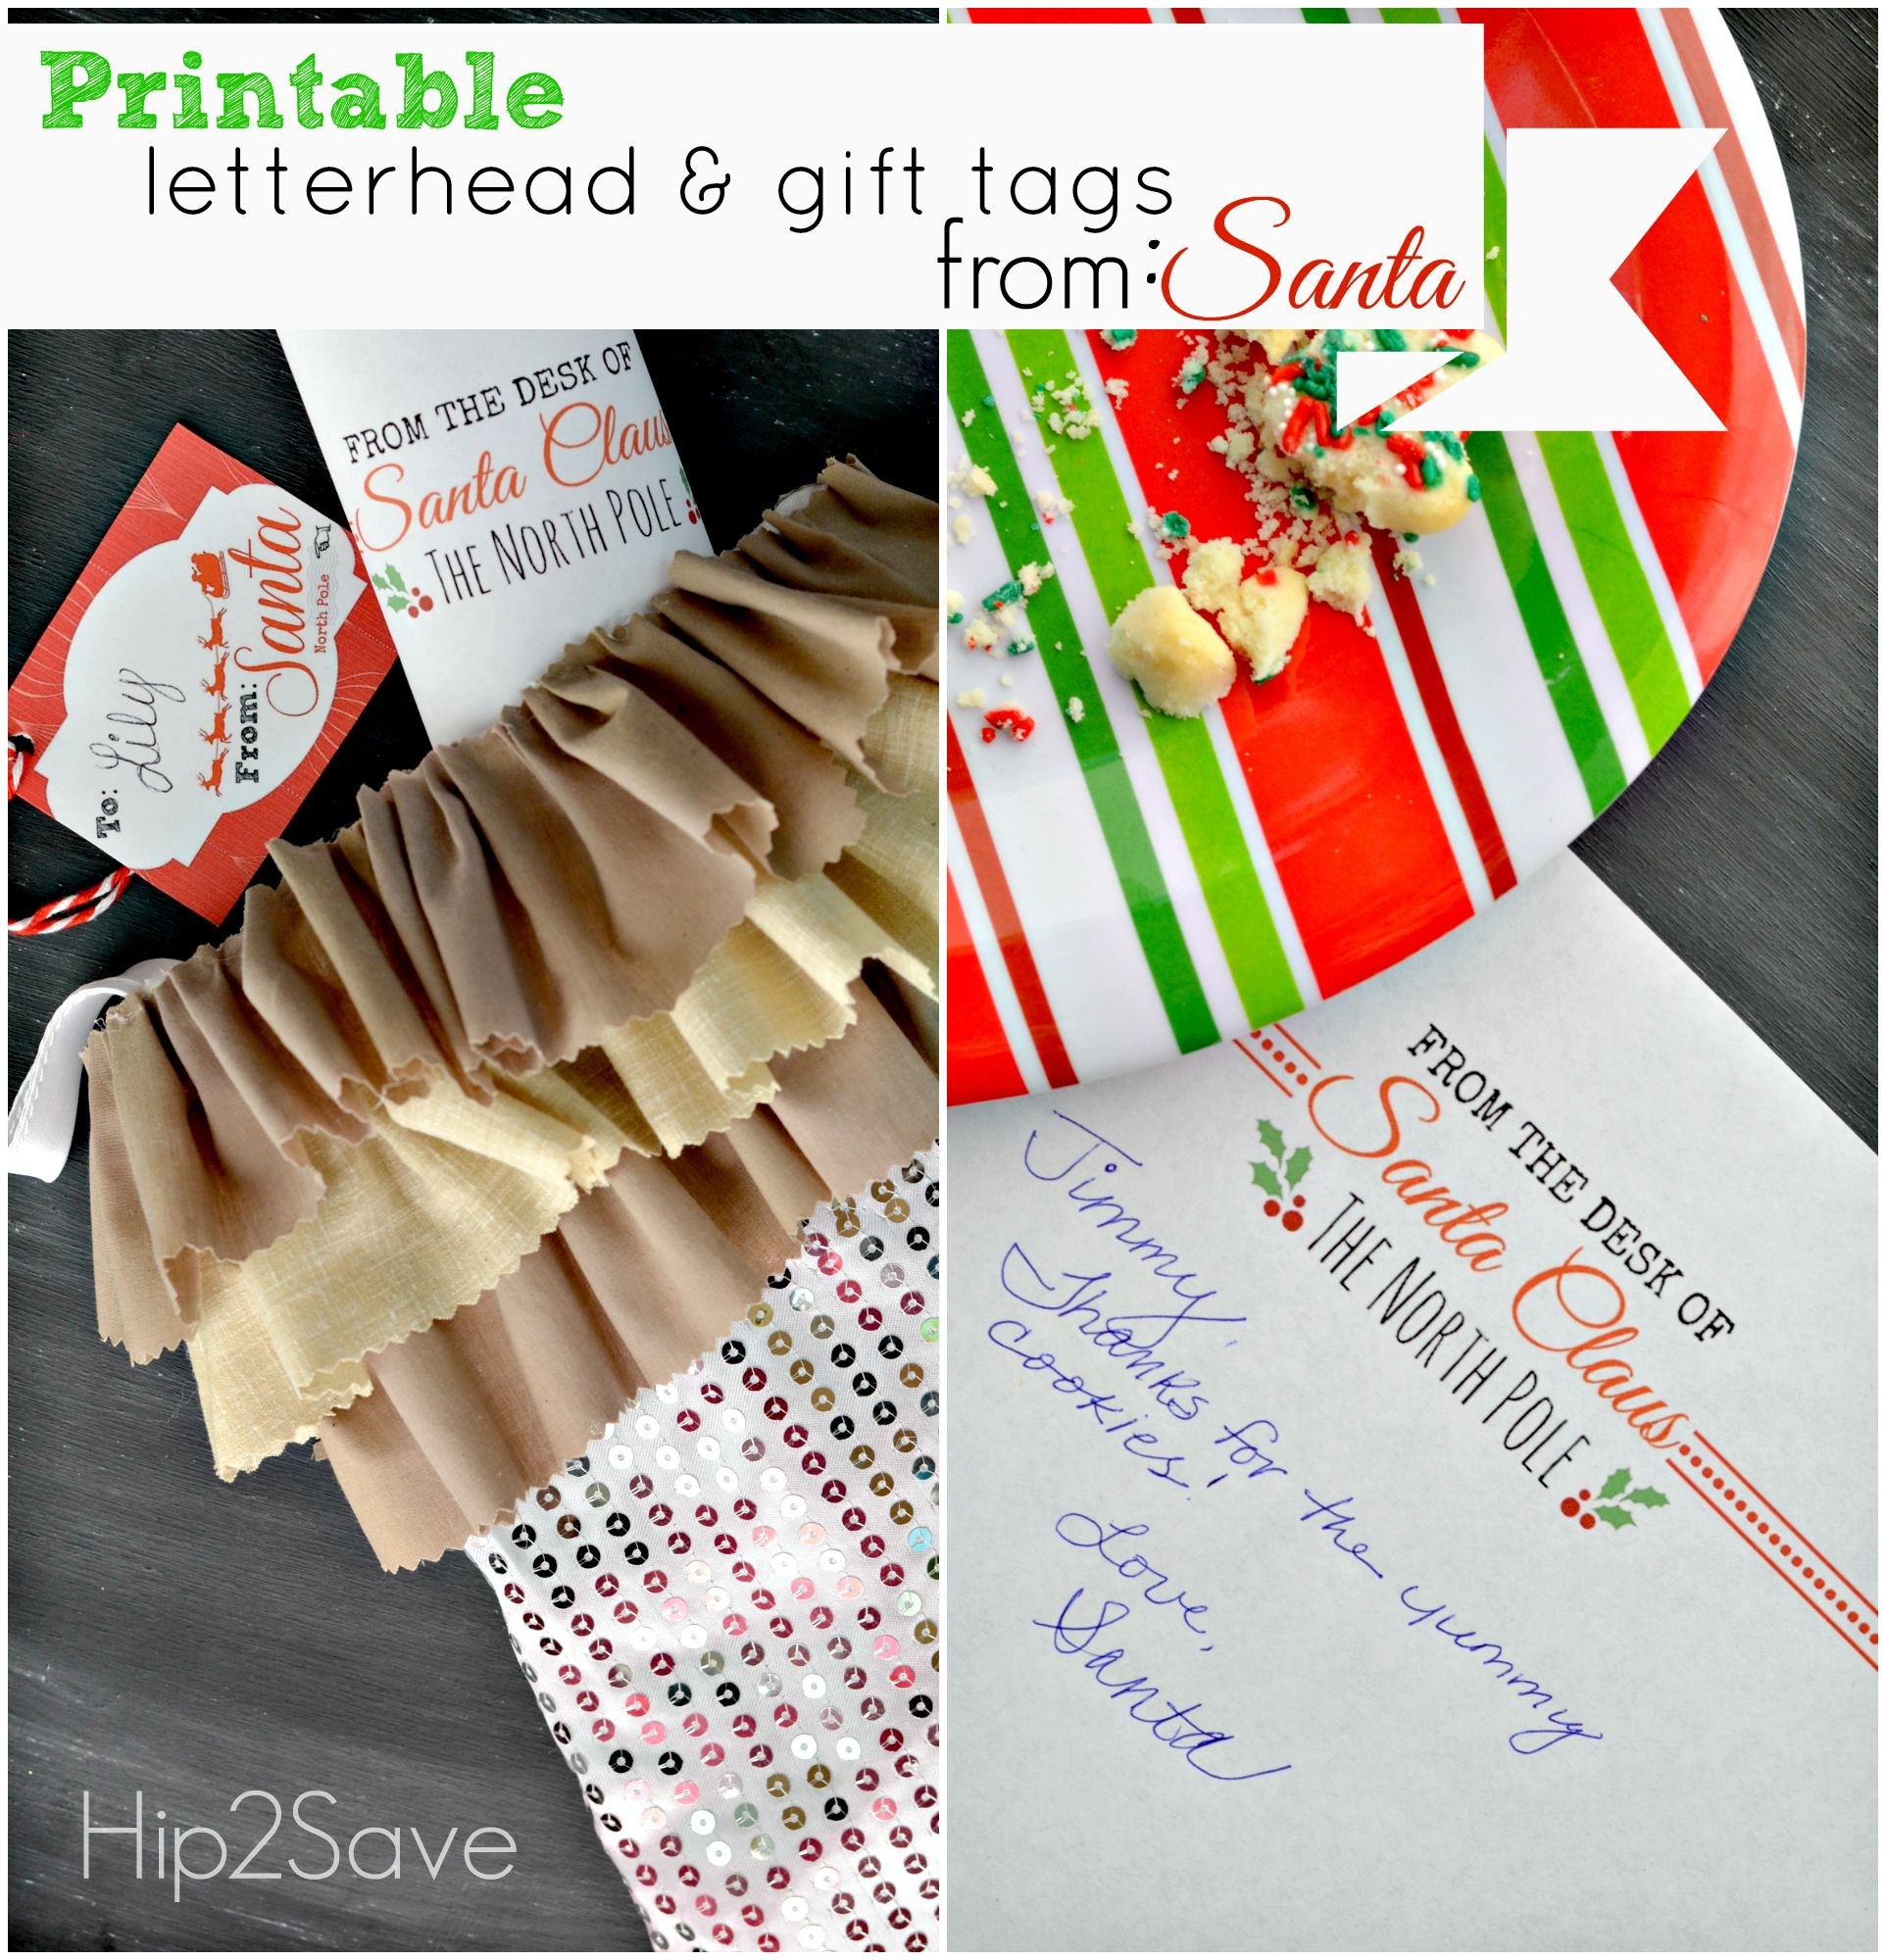 Official letterhead and gifts tags from santa claus free